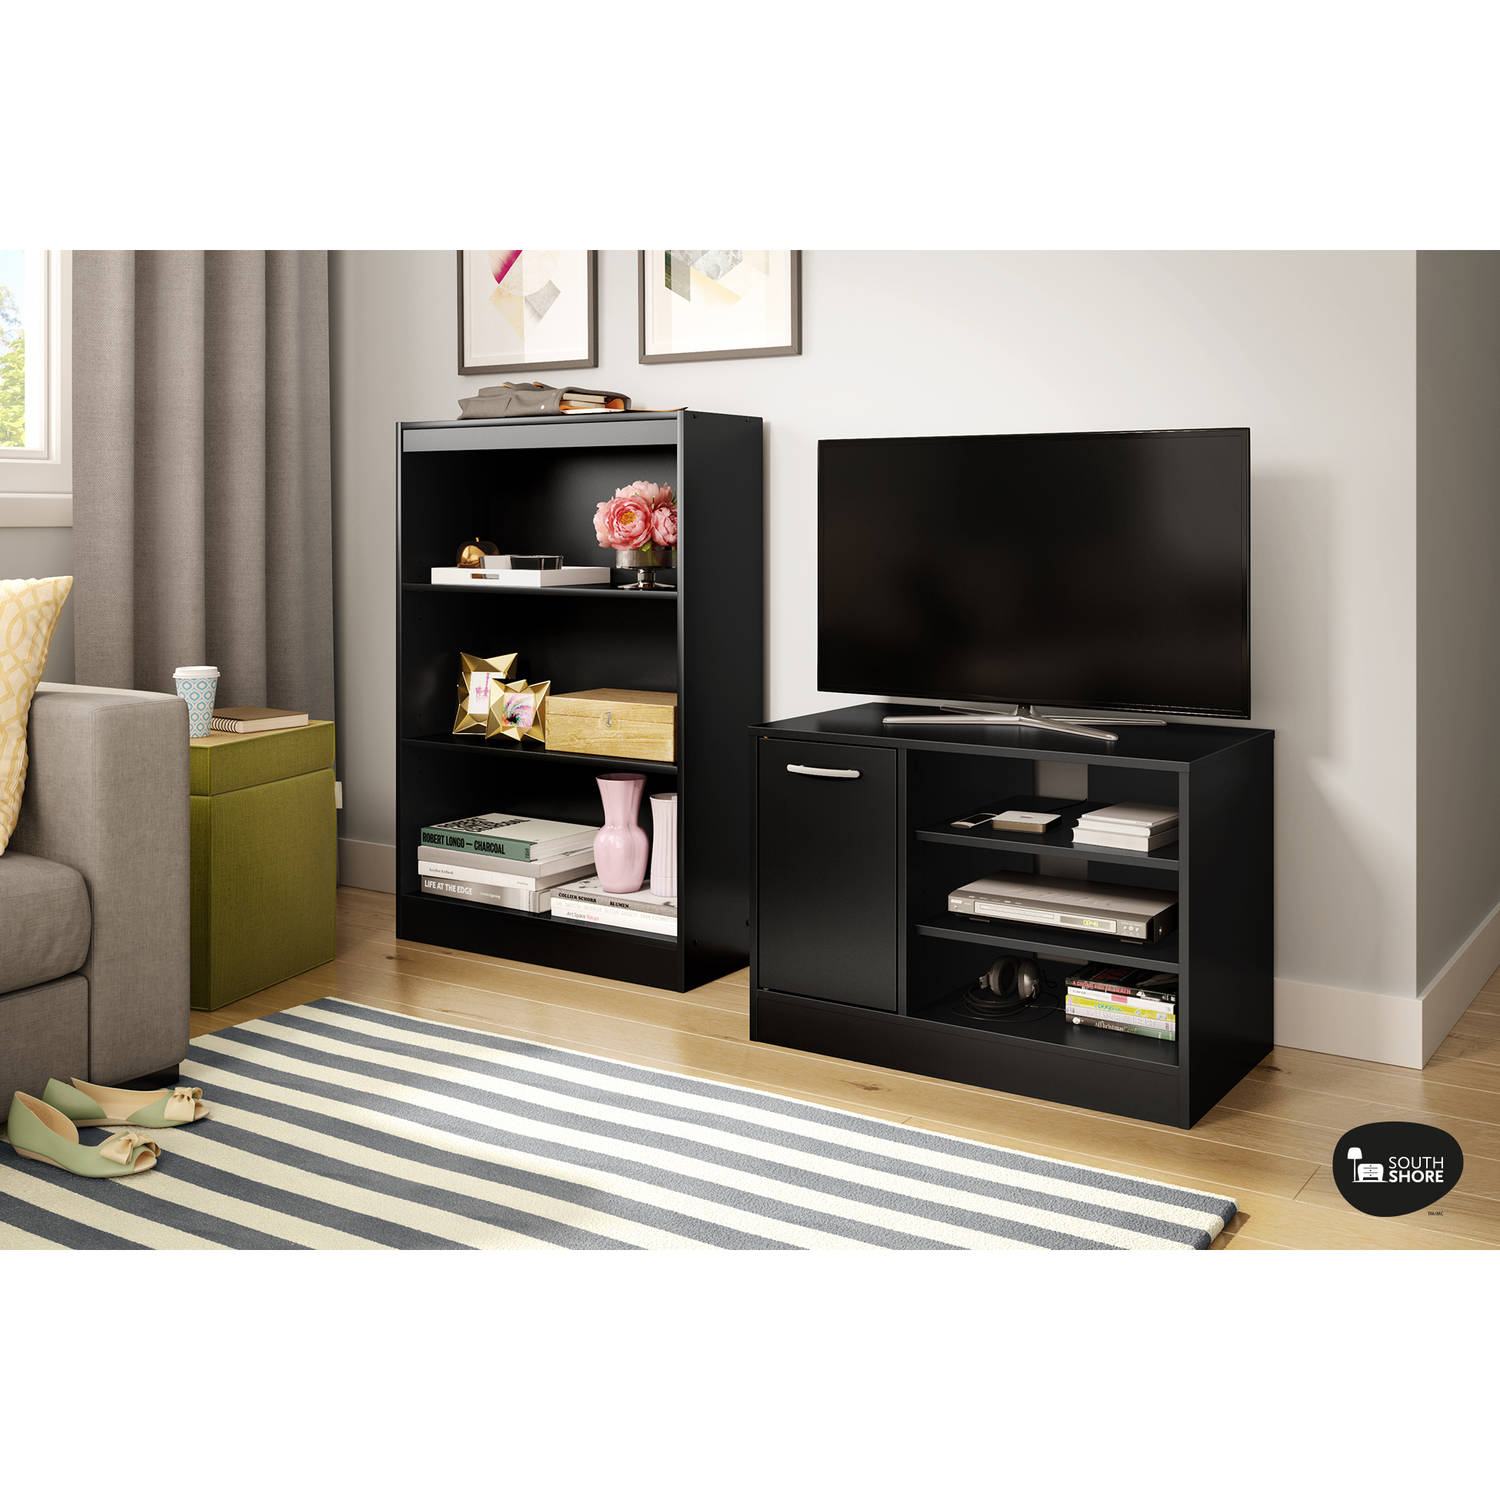 "South Shore Smart Basics TV Stand with Storage for TVs up to 42"", Multiple Finishes"